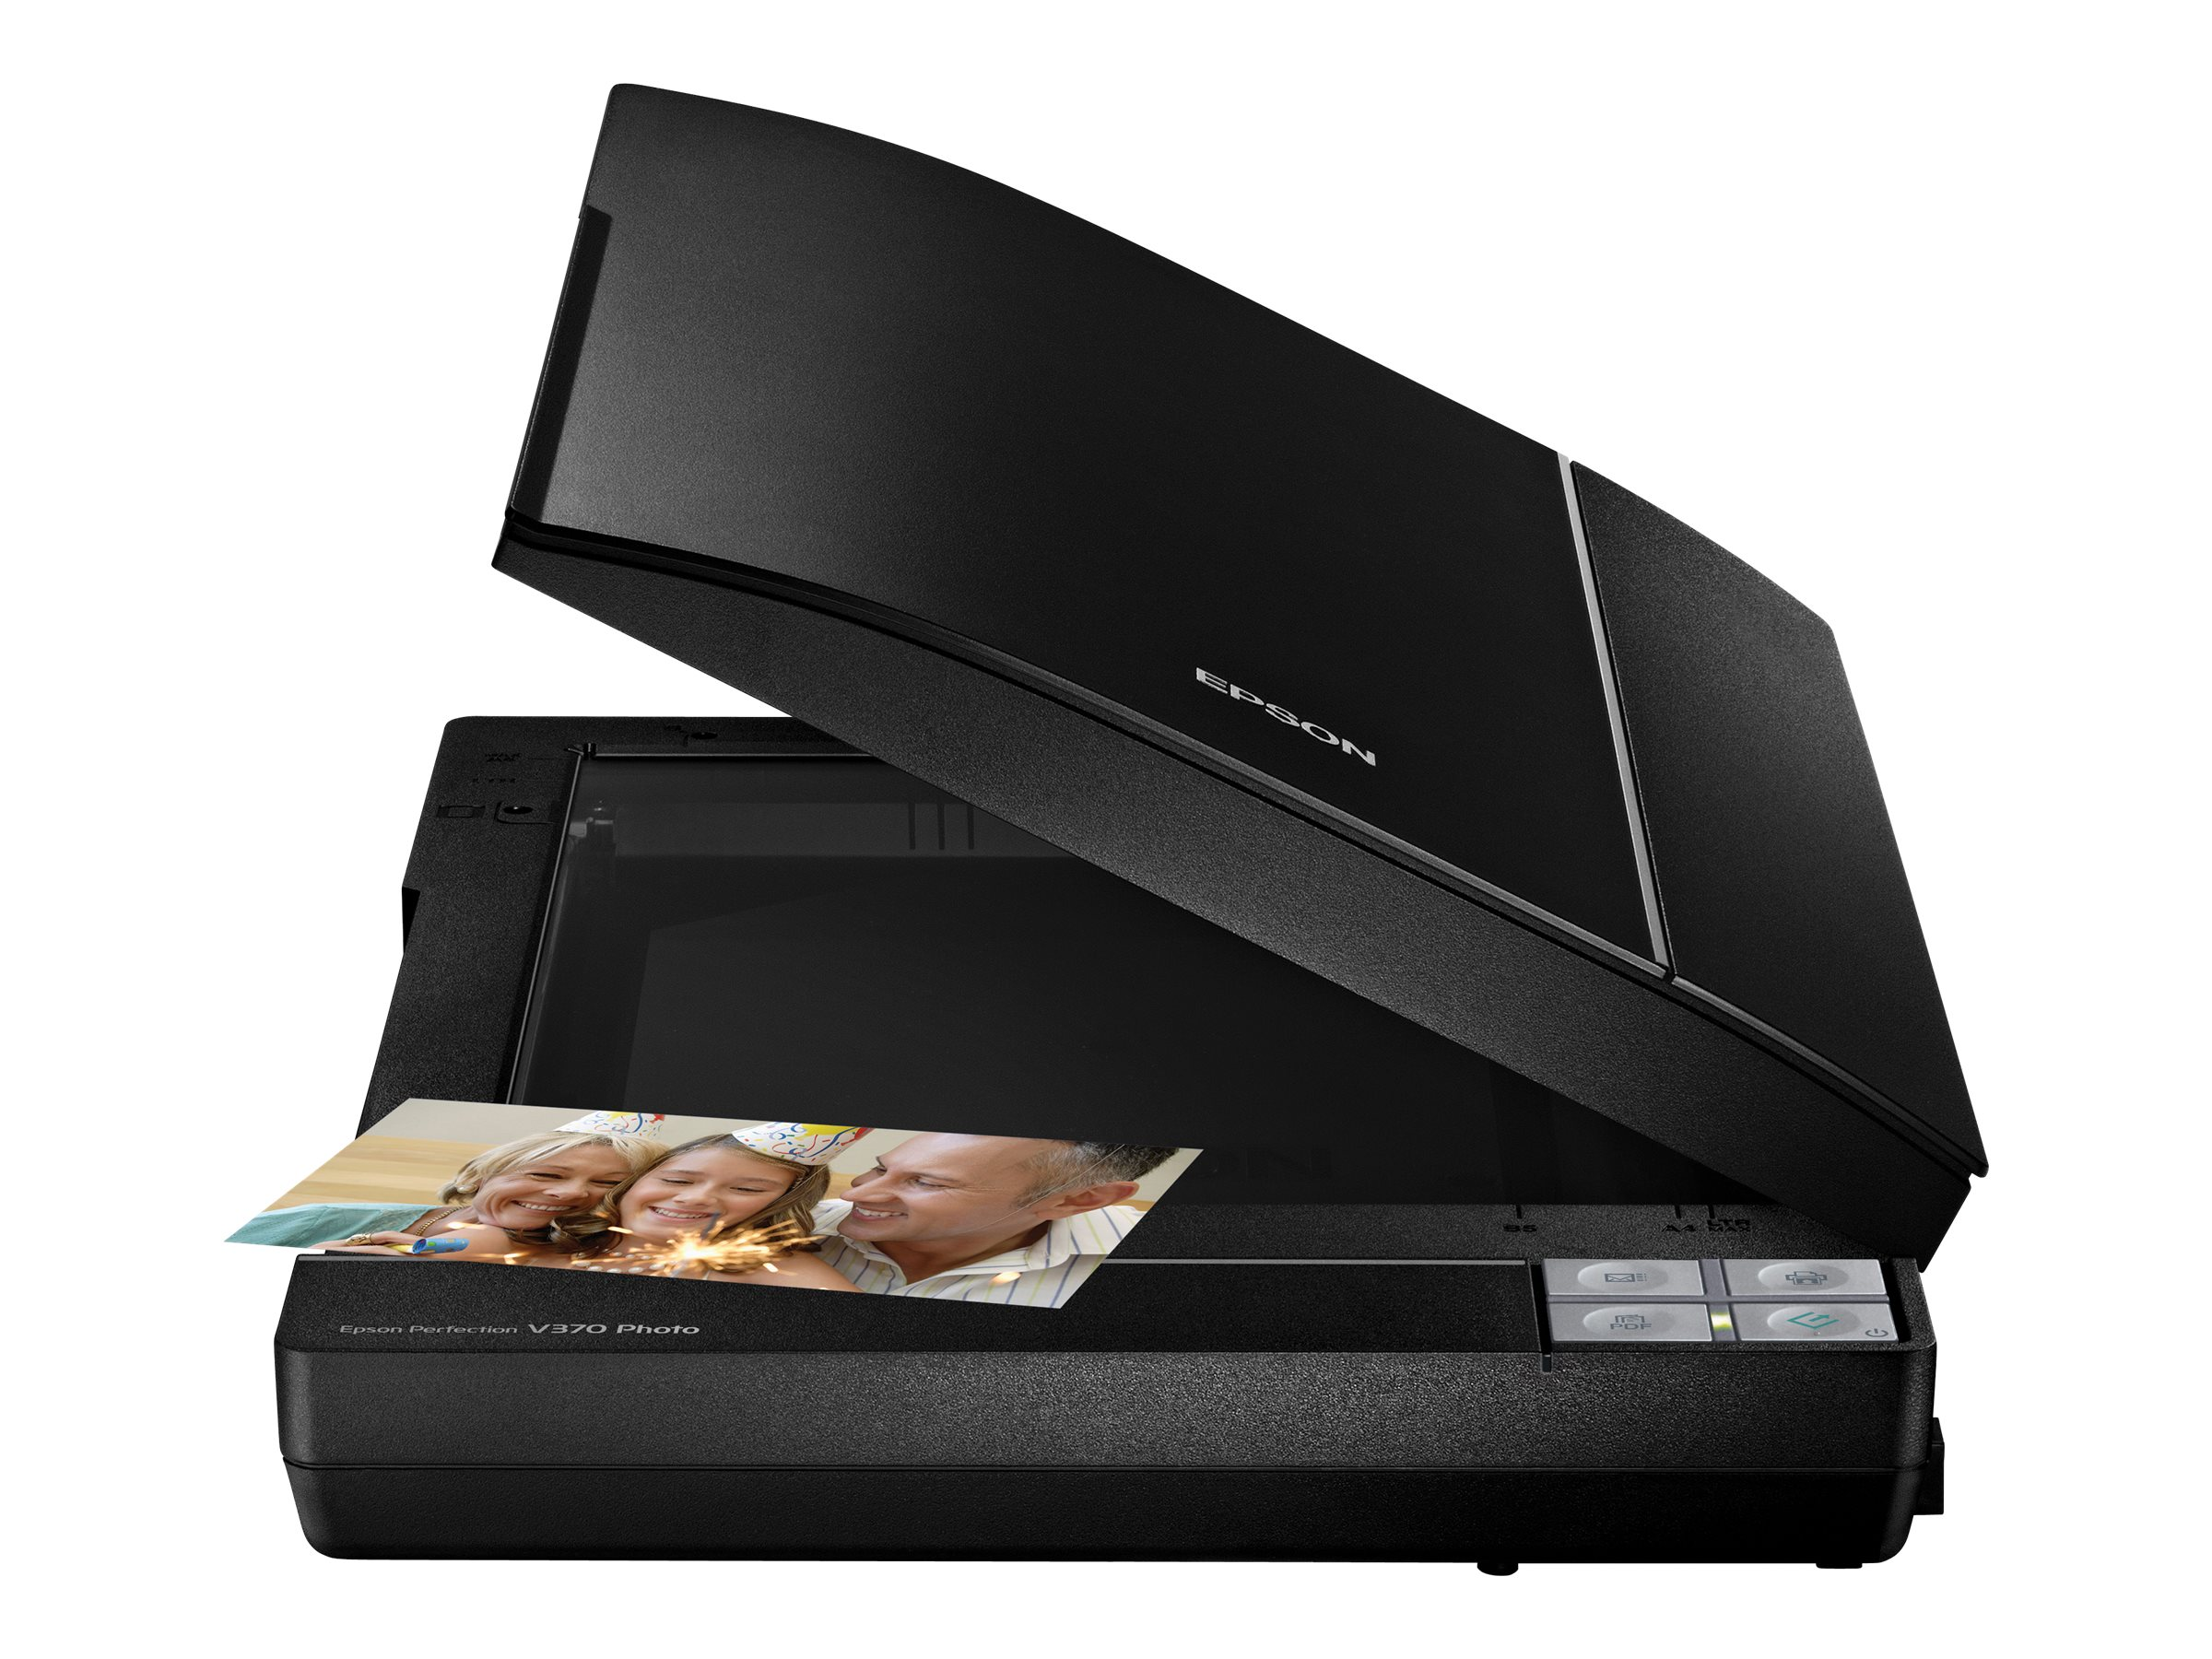 Epson Perfection V370 Scanner USB 4800dpi - $129.99 less instant rebate of $7.00